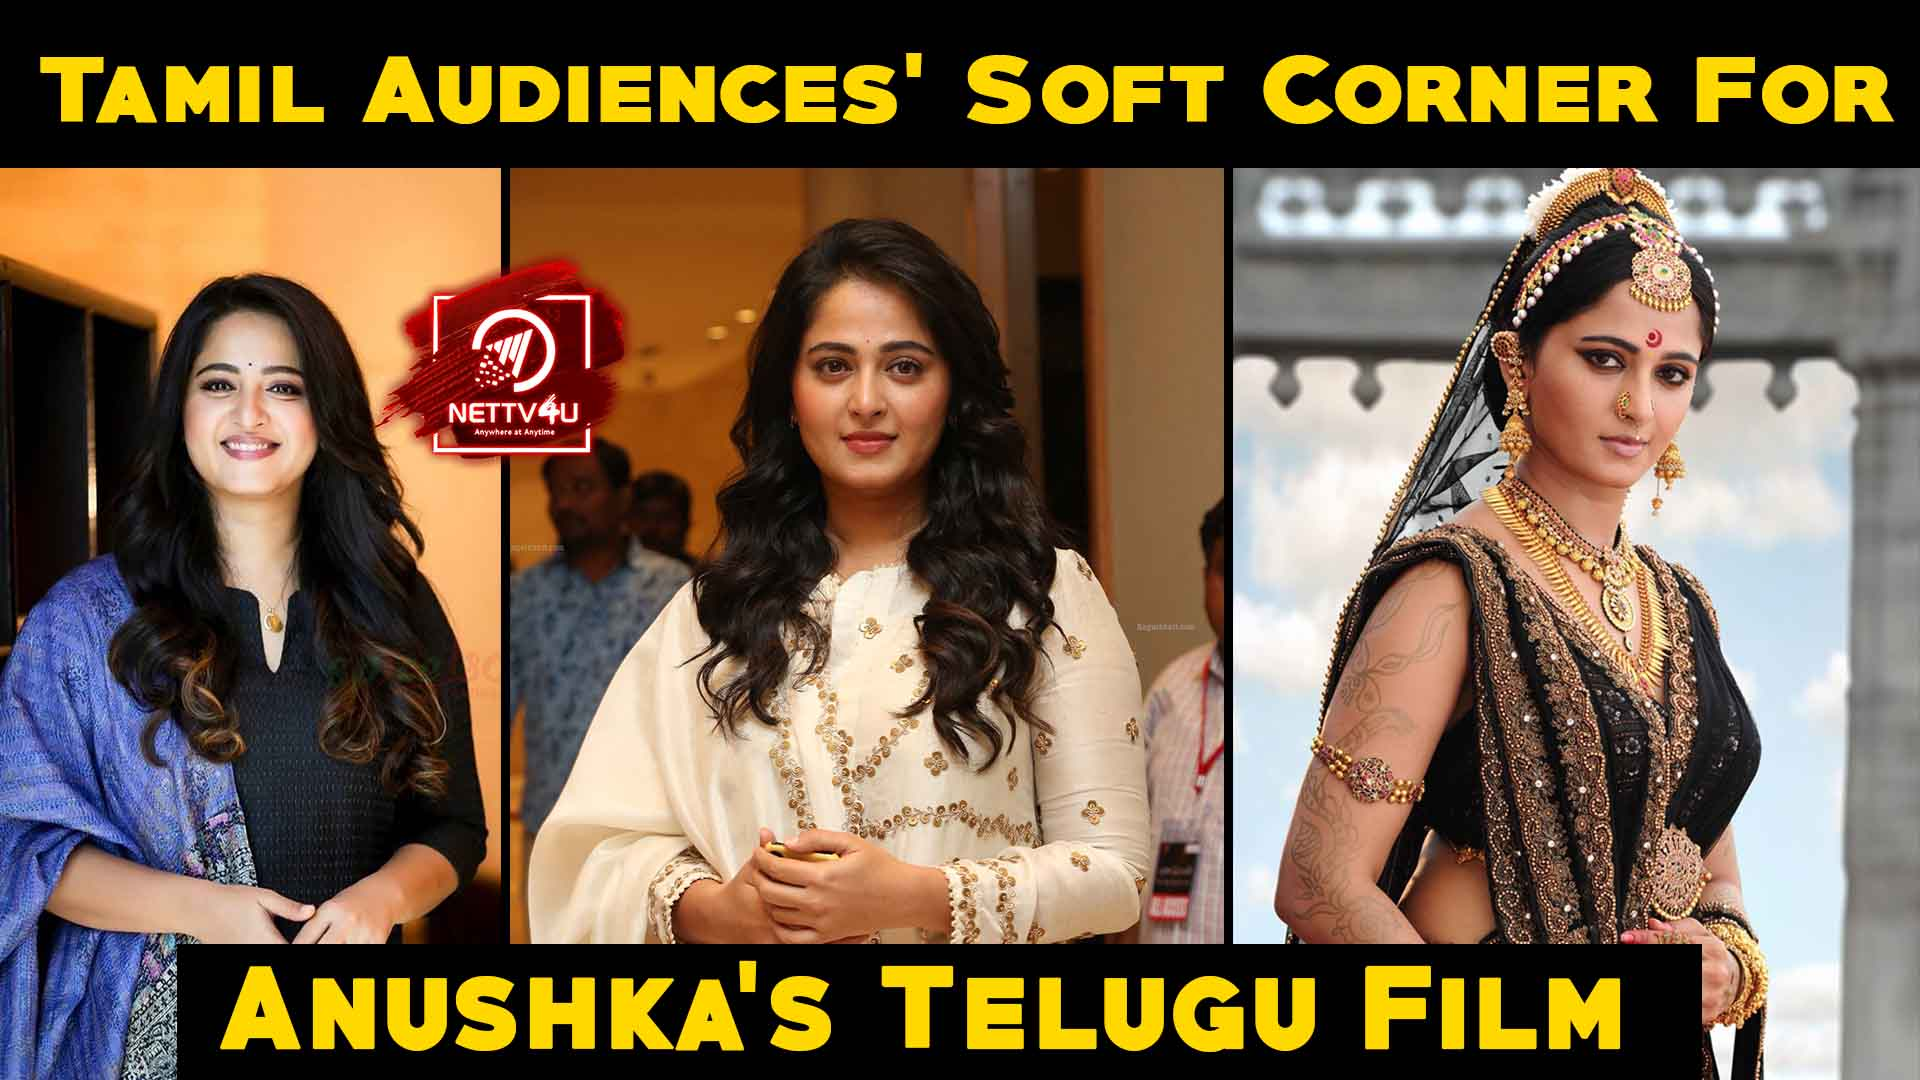 Tamil Audiences Soft Corner For Anushka's Telugu Films